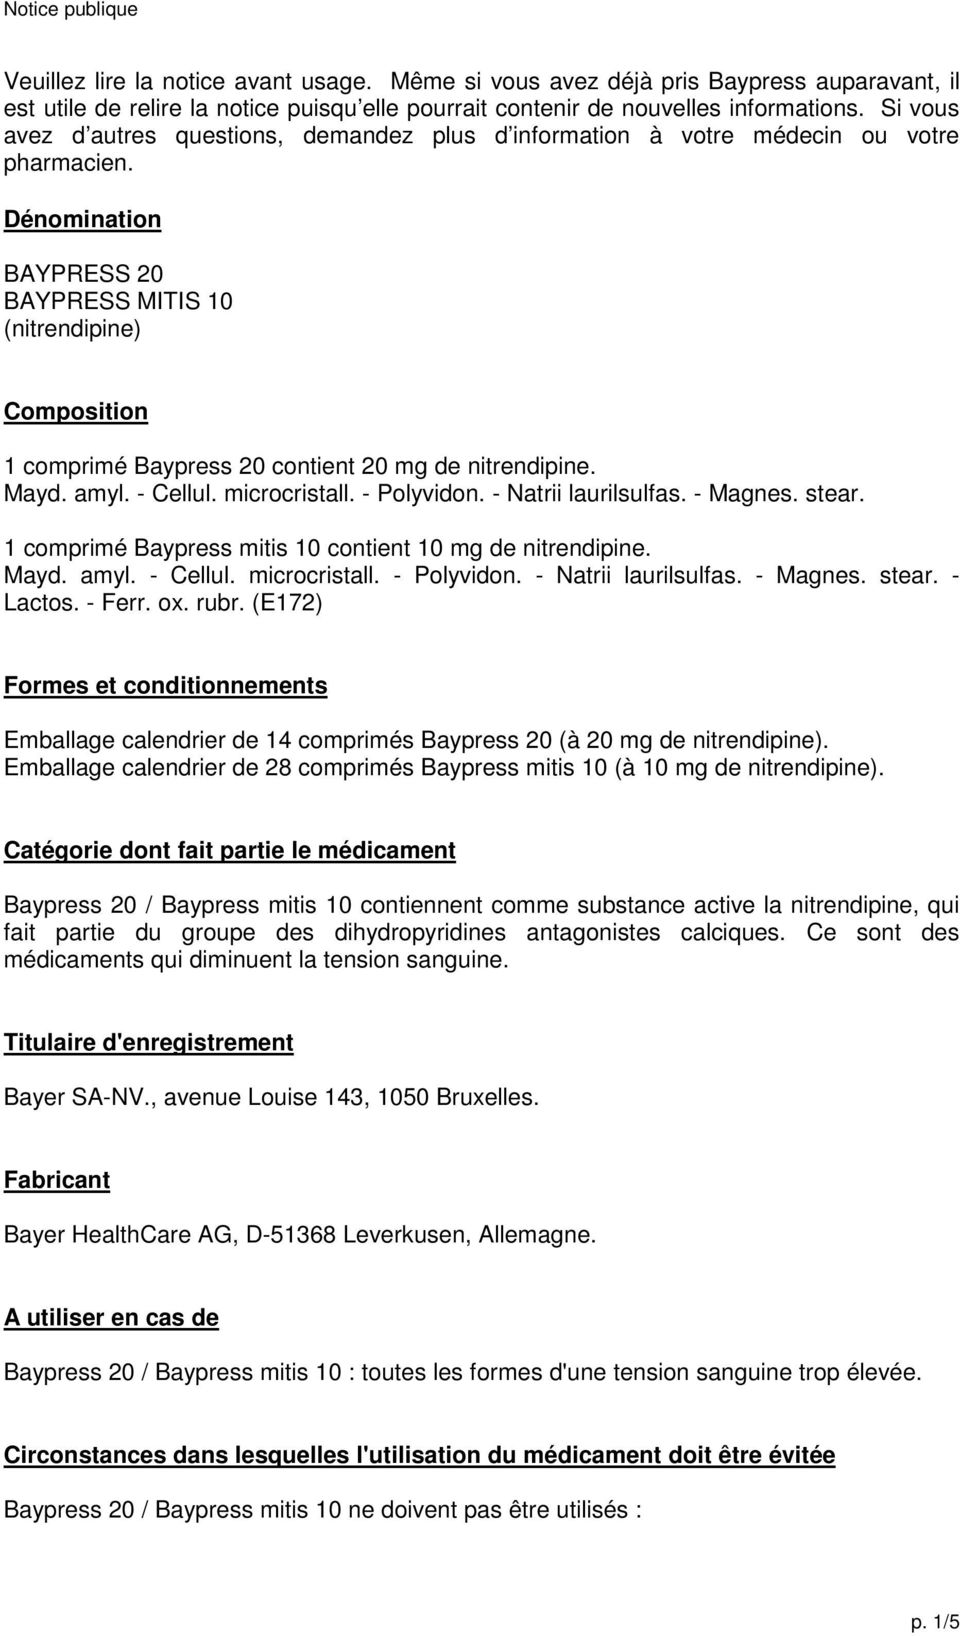 Dénomination BAYPRESS 20 BAYPRESS MITIS 10 (nitrendipine) Composition 1 comprimé Baypress 20 contient 20 mg de nitrendipine. Mayd. amyl. - Cellul. microcristall. - Polyvidon. - Natrii laurilsulfas.